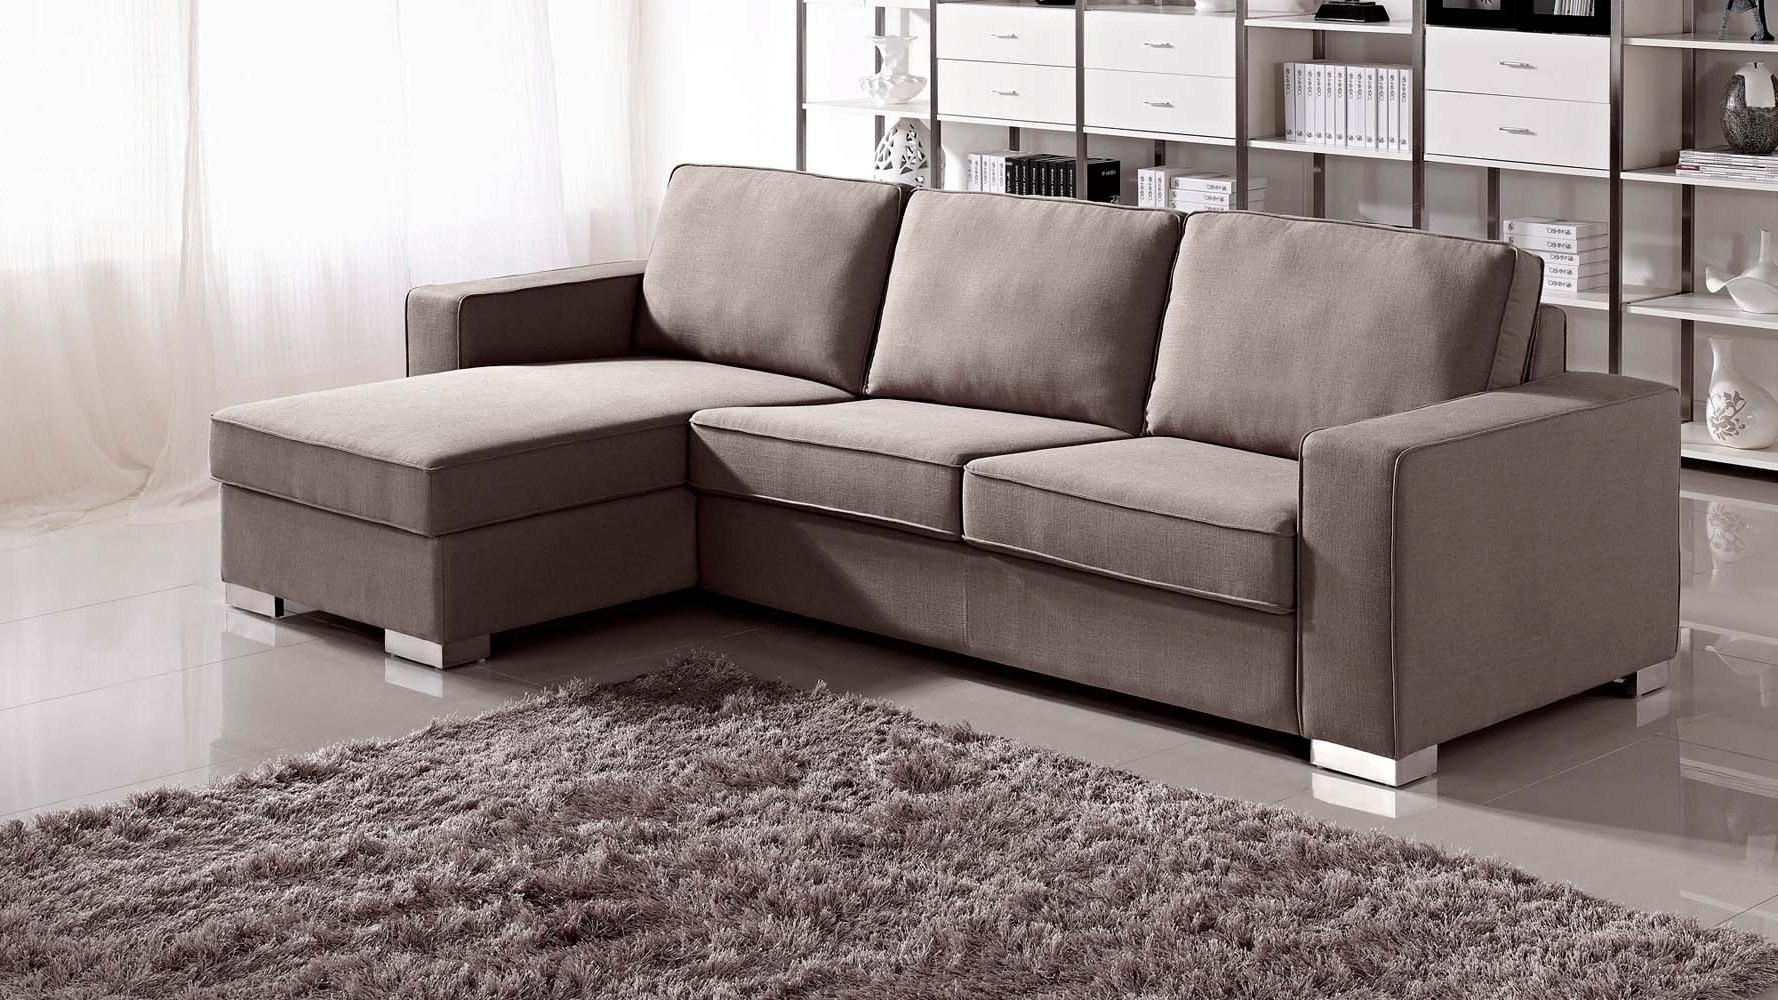 Sofas Center : Broyhill Furniture Milo Contemporary Sectional Sofa Throughout Broyhill Sectional Sofas (Image 11 of 15)